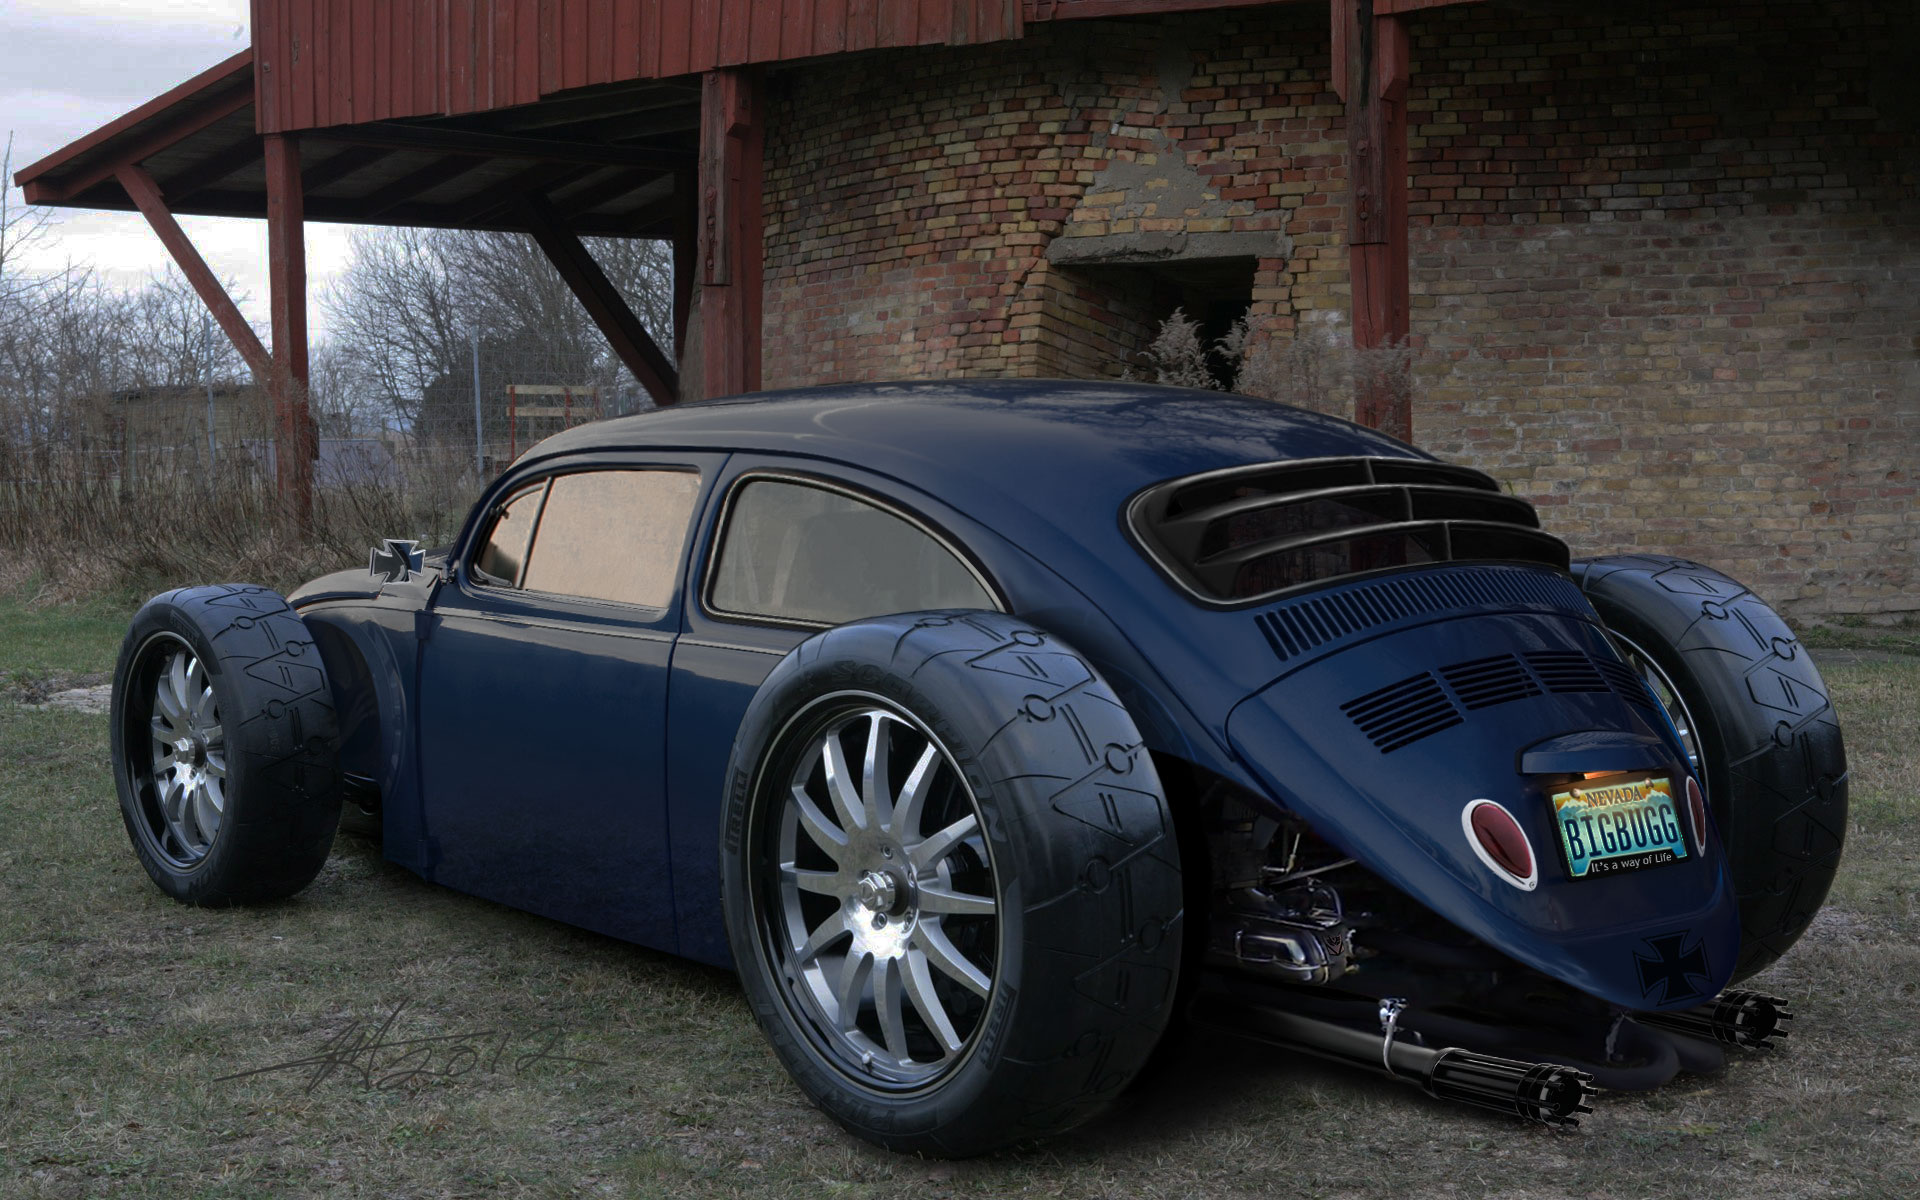 awesome riding vw bugs hotrods vw beetles volkswagen hotrods big wheels cars rats rods